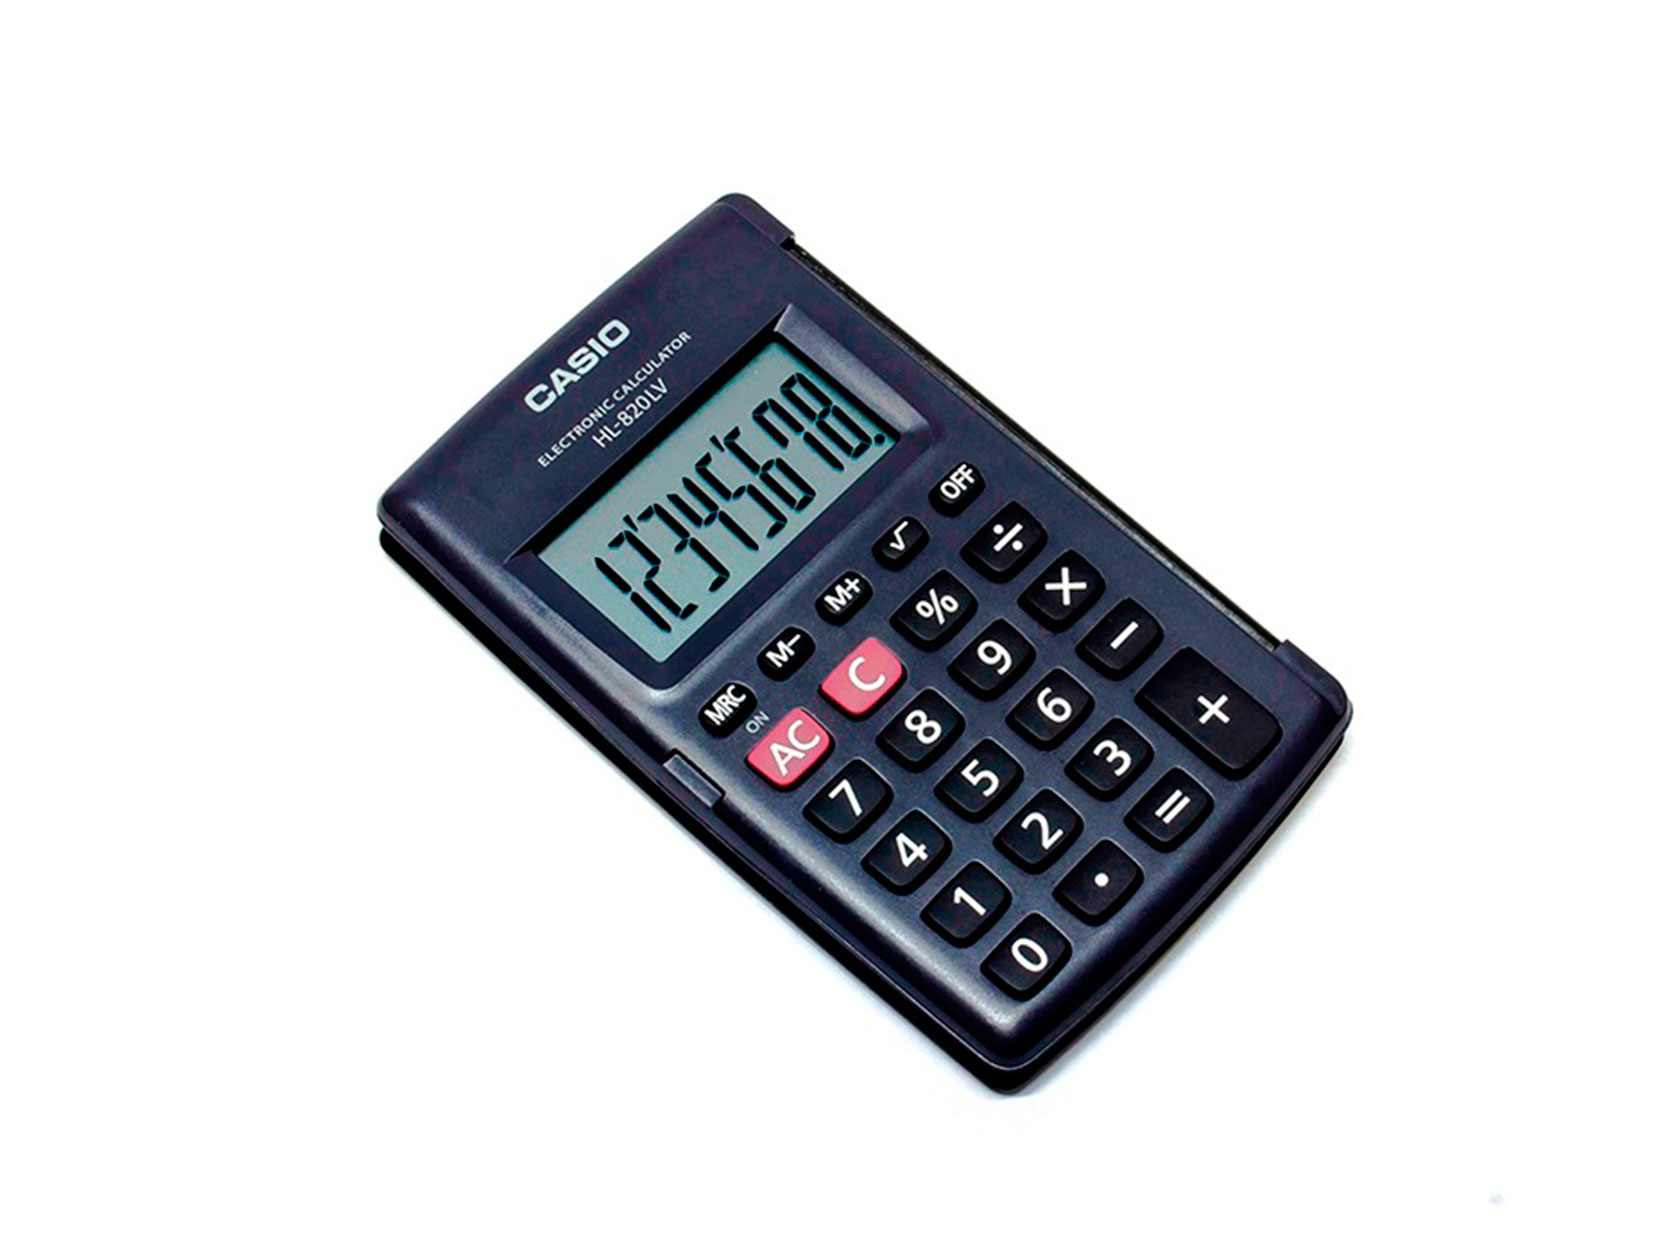 CALCULADORA 8 DIGITOS HL 820 LV NEGRO